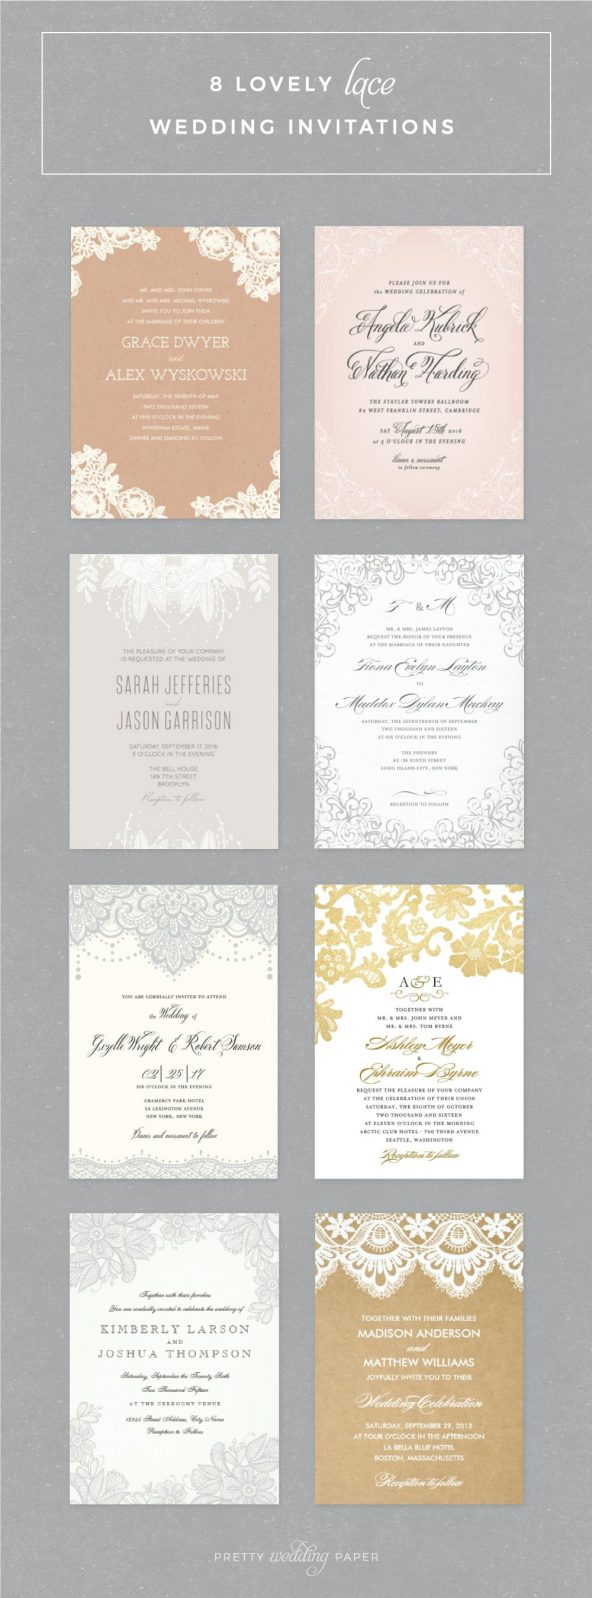 8 lovely lace wedding invitations ideas for romantic weddings - Paper For Wedding Invitations